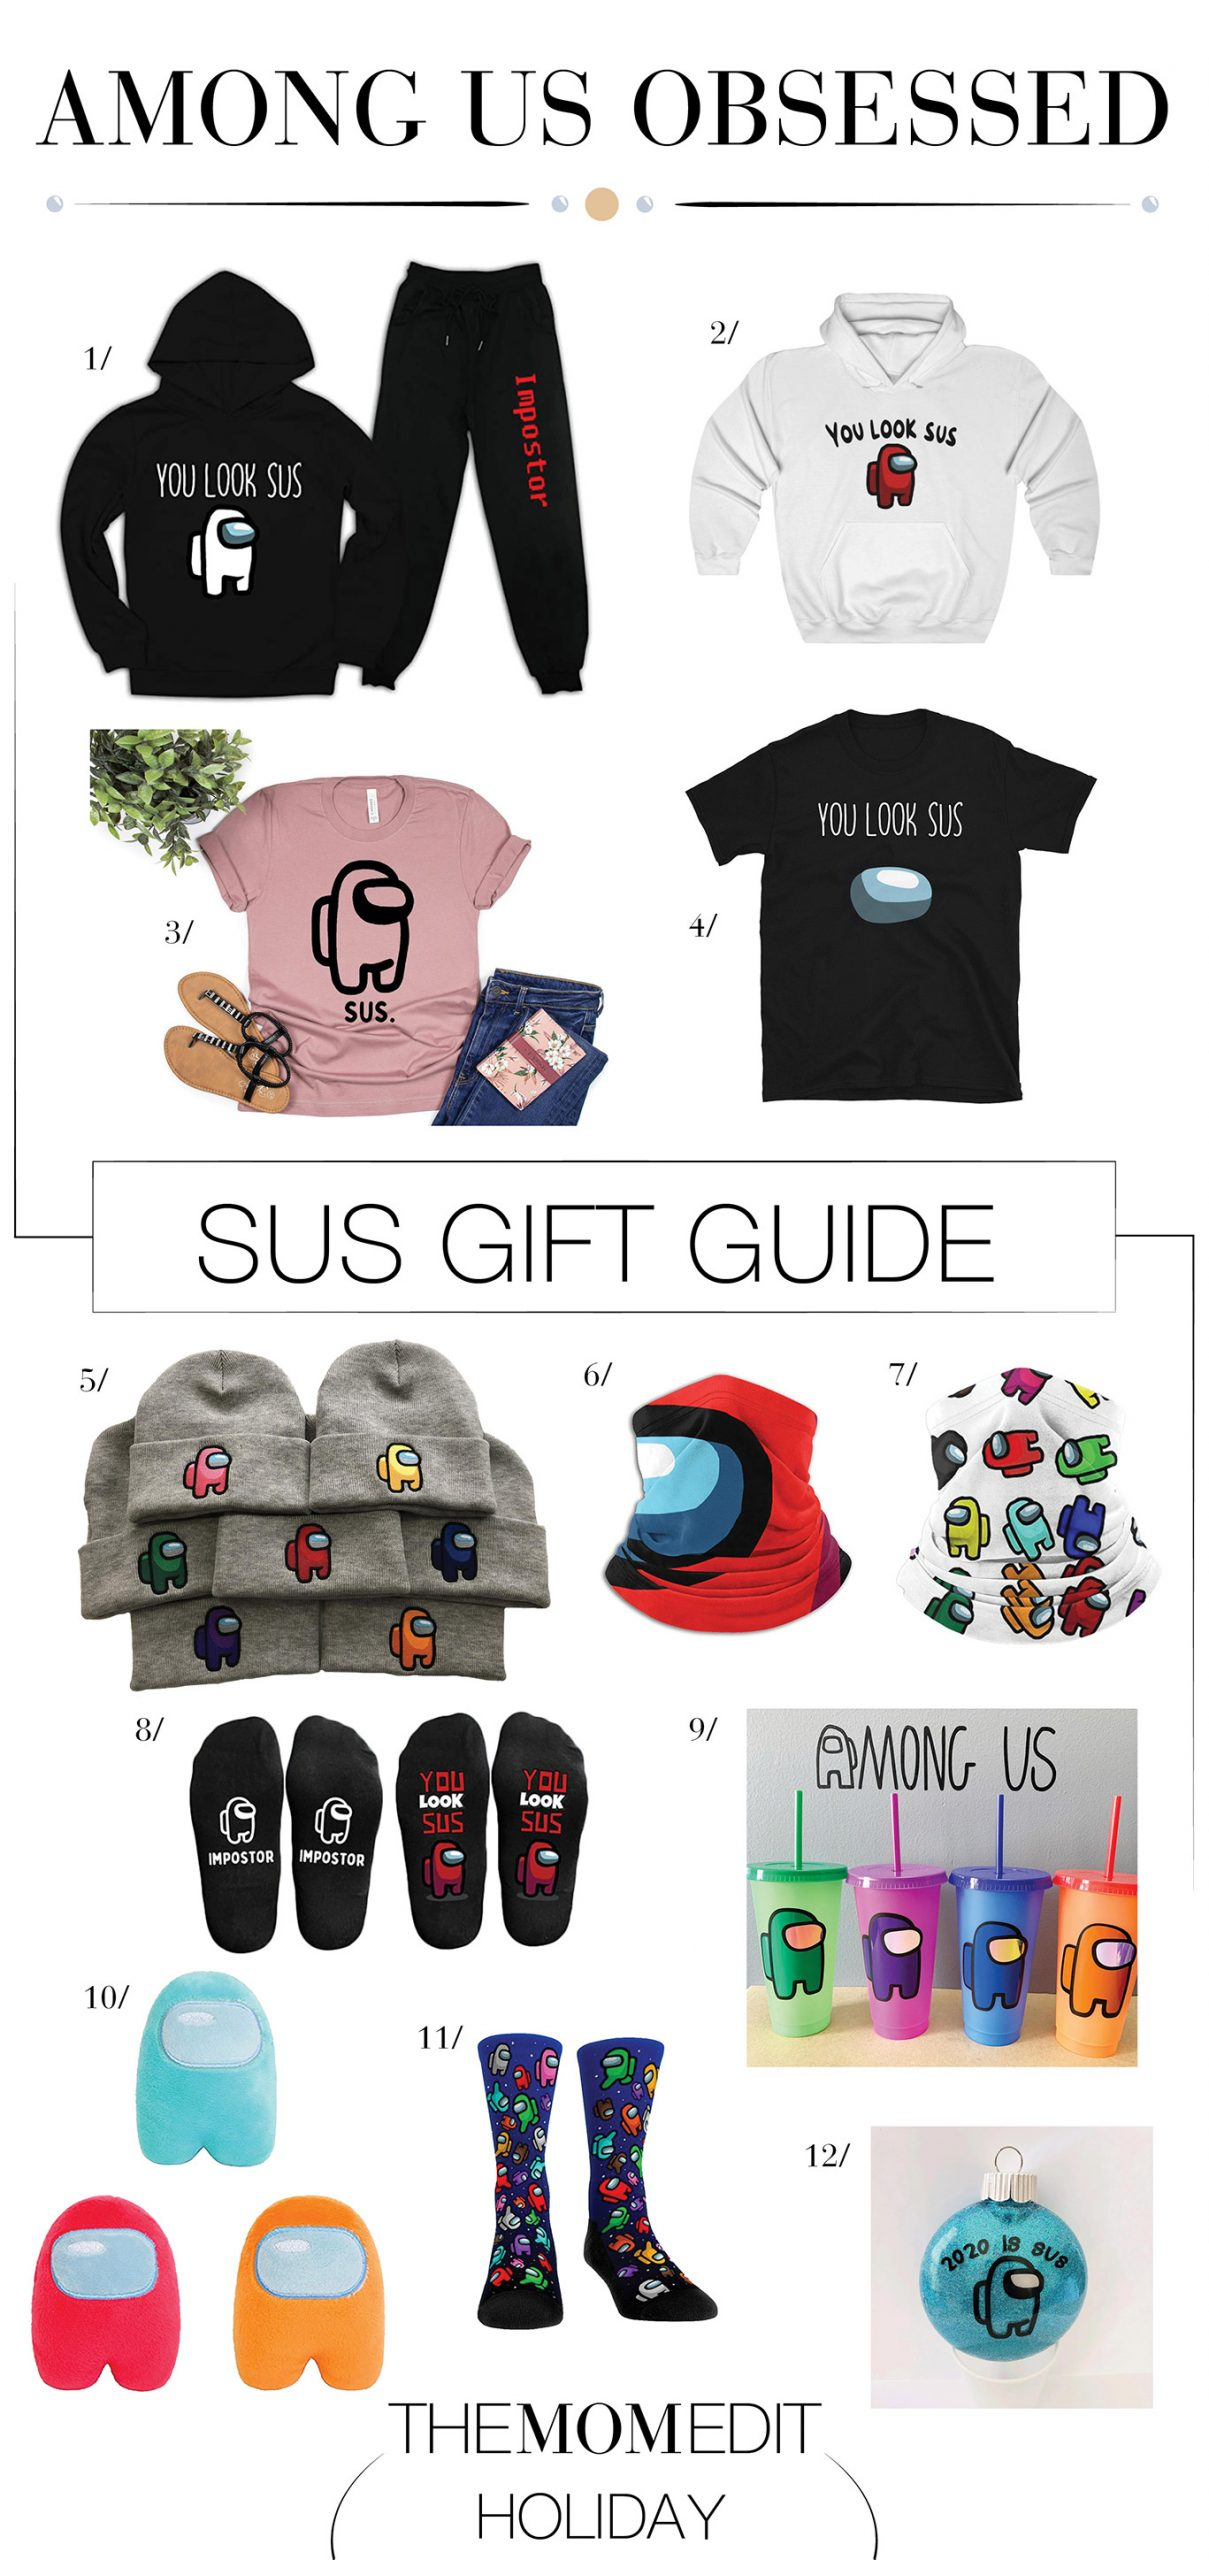 """We're obsessed. Among Us has us folding in tasks at home & """"you look sus"""" = the phrase of the day. So we're rolling w fun gifts, for the imposter among us."""